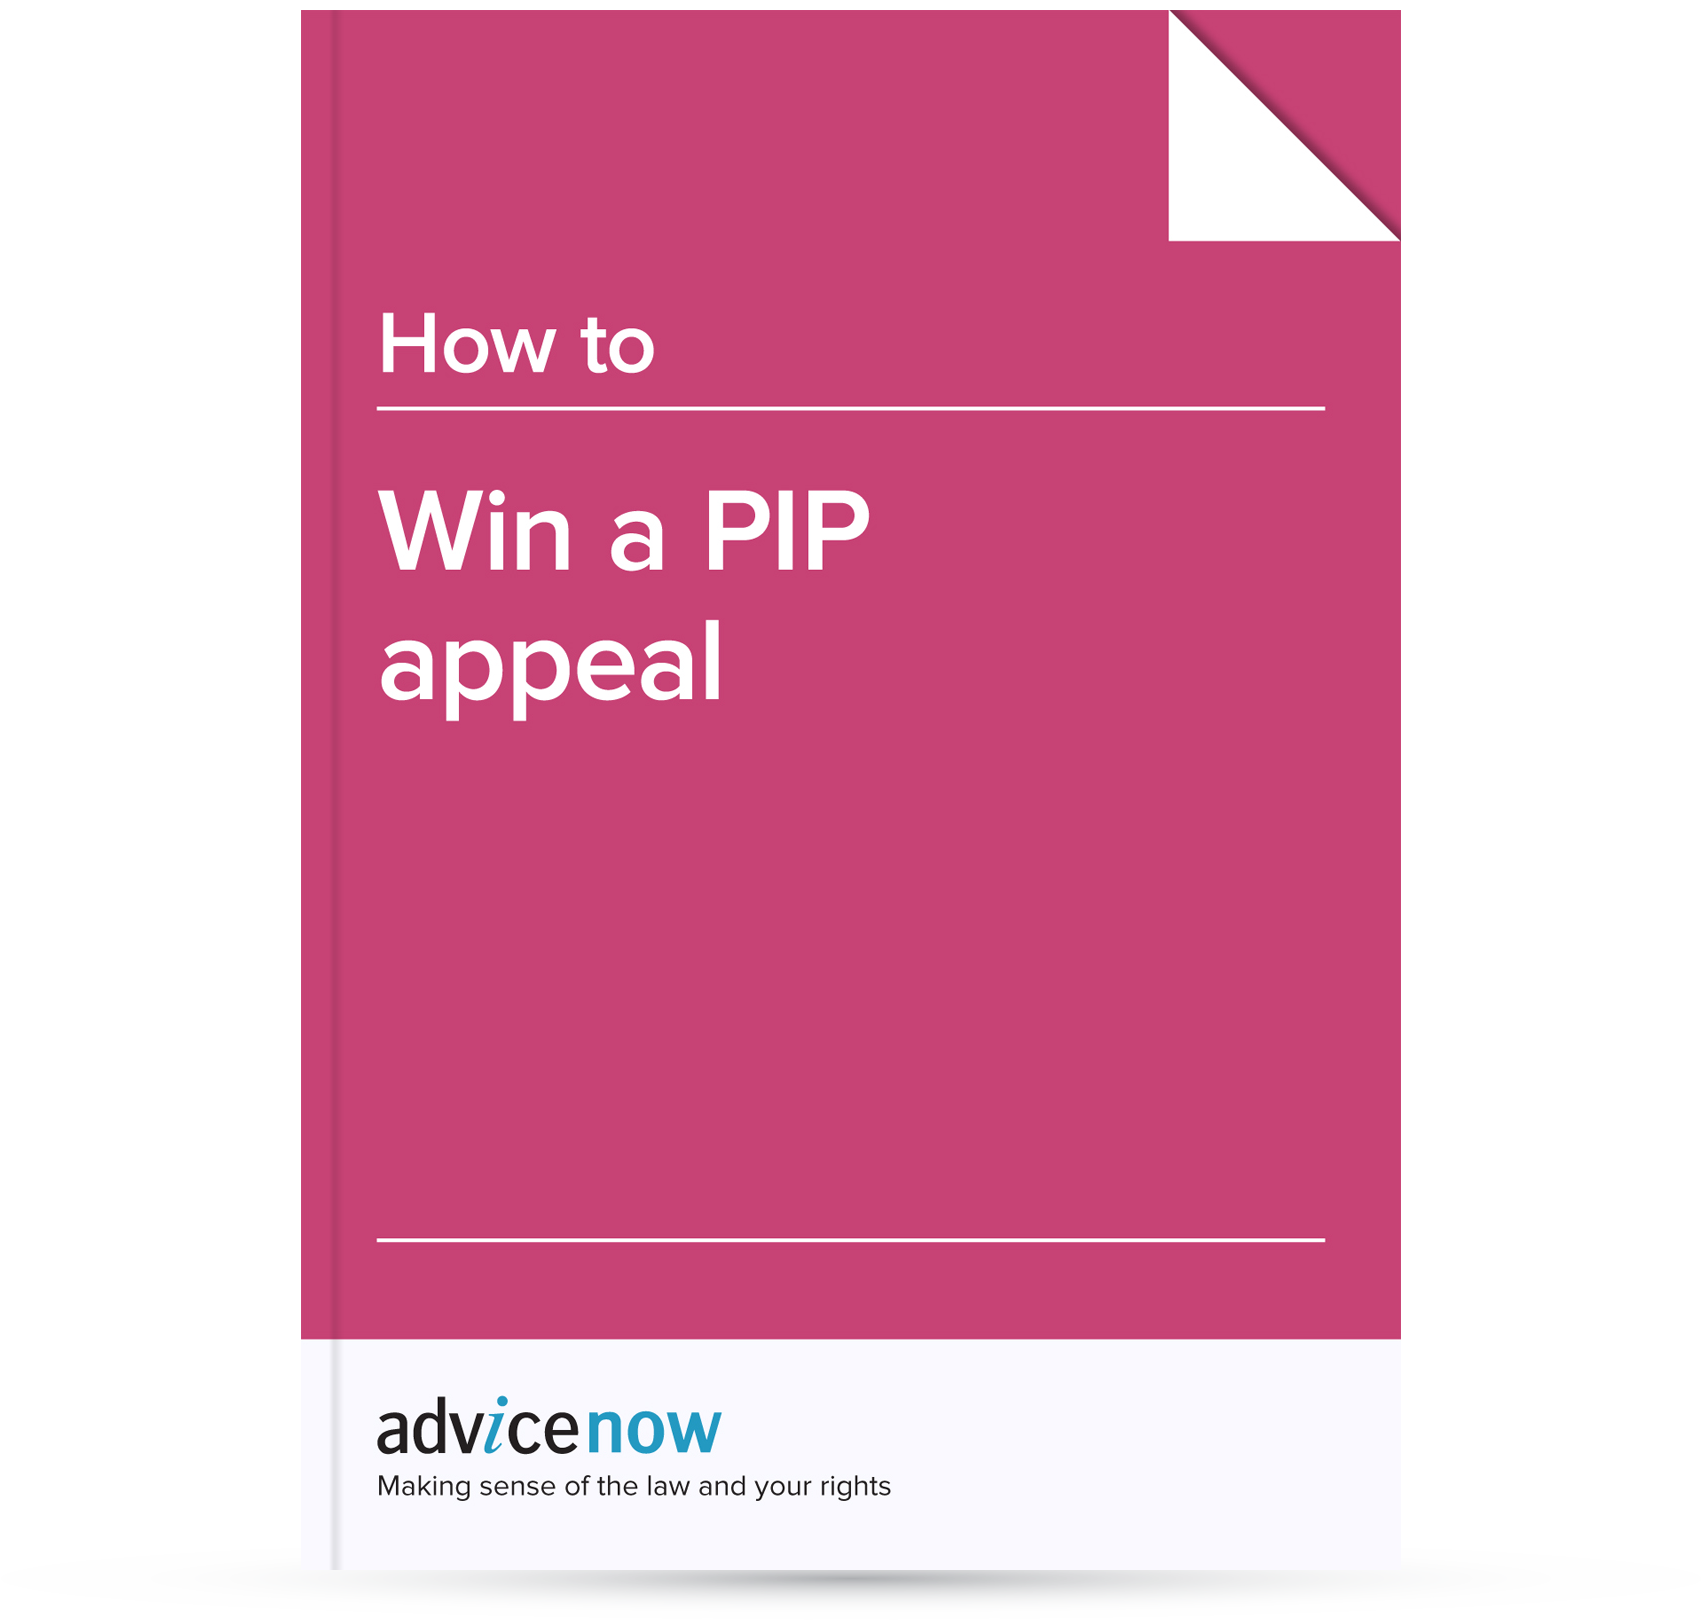 how to win a pip appeal advicenow